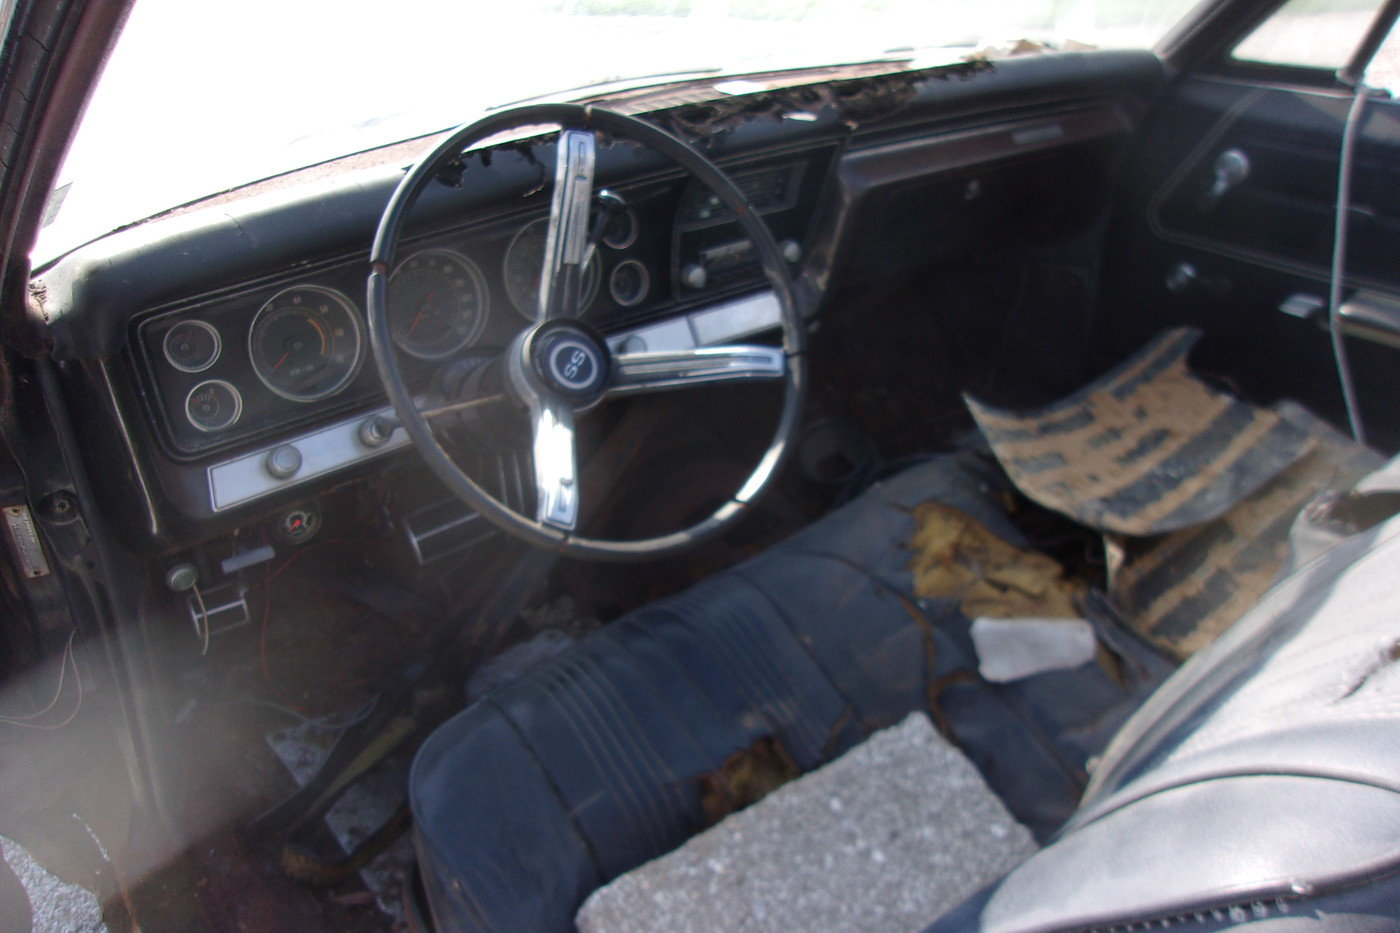 1967 Chevrolet Impala SS 396 convertible  For Sale (picture 4 of 6)